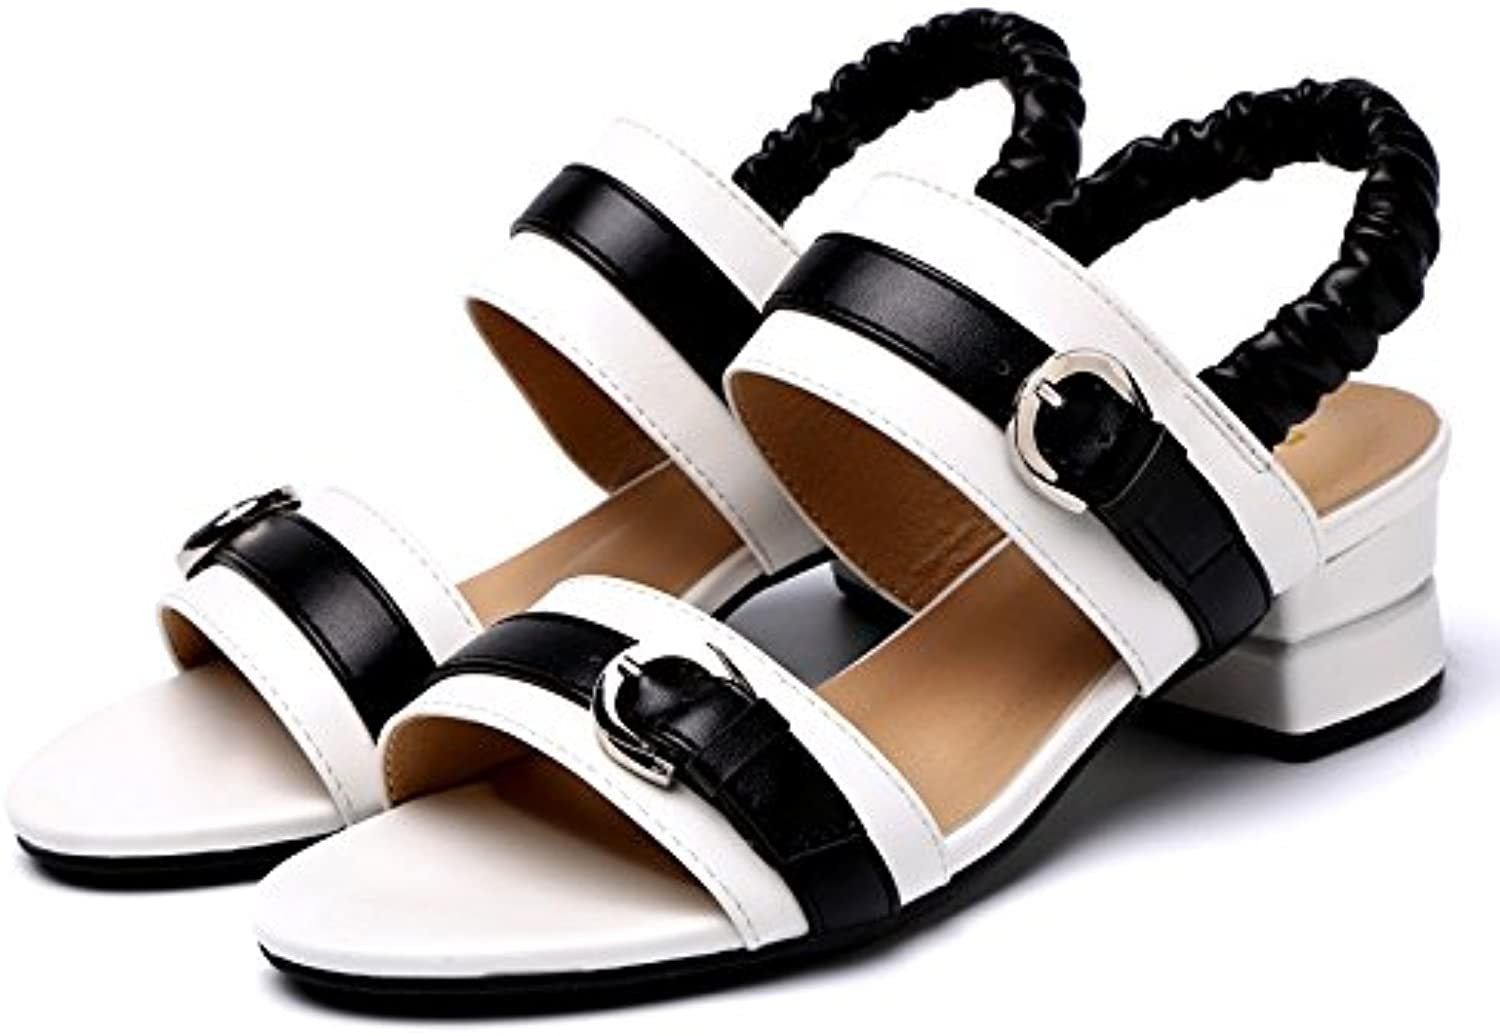 LGK&FA Comfortable with Sandals Female Toes and Women's Hollow Coloured Sandals. Thirty-Nine White